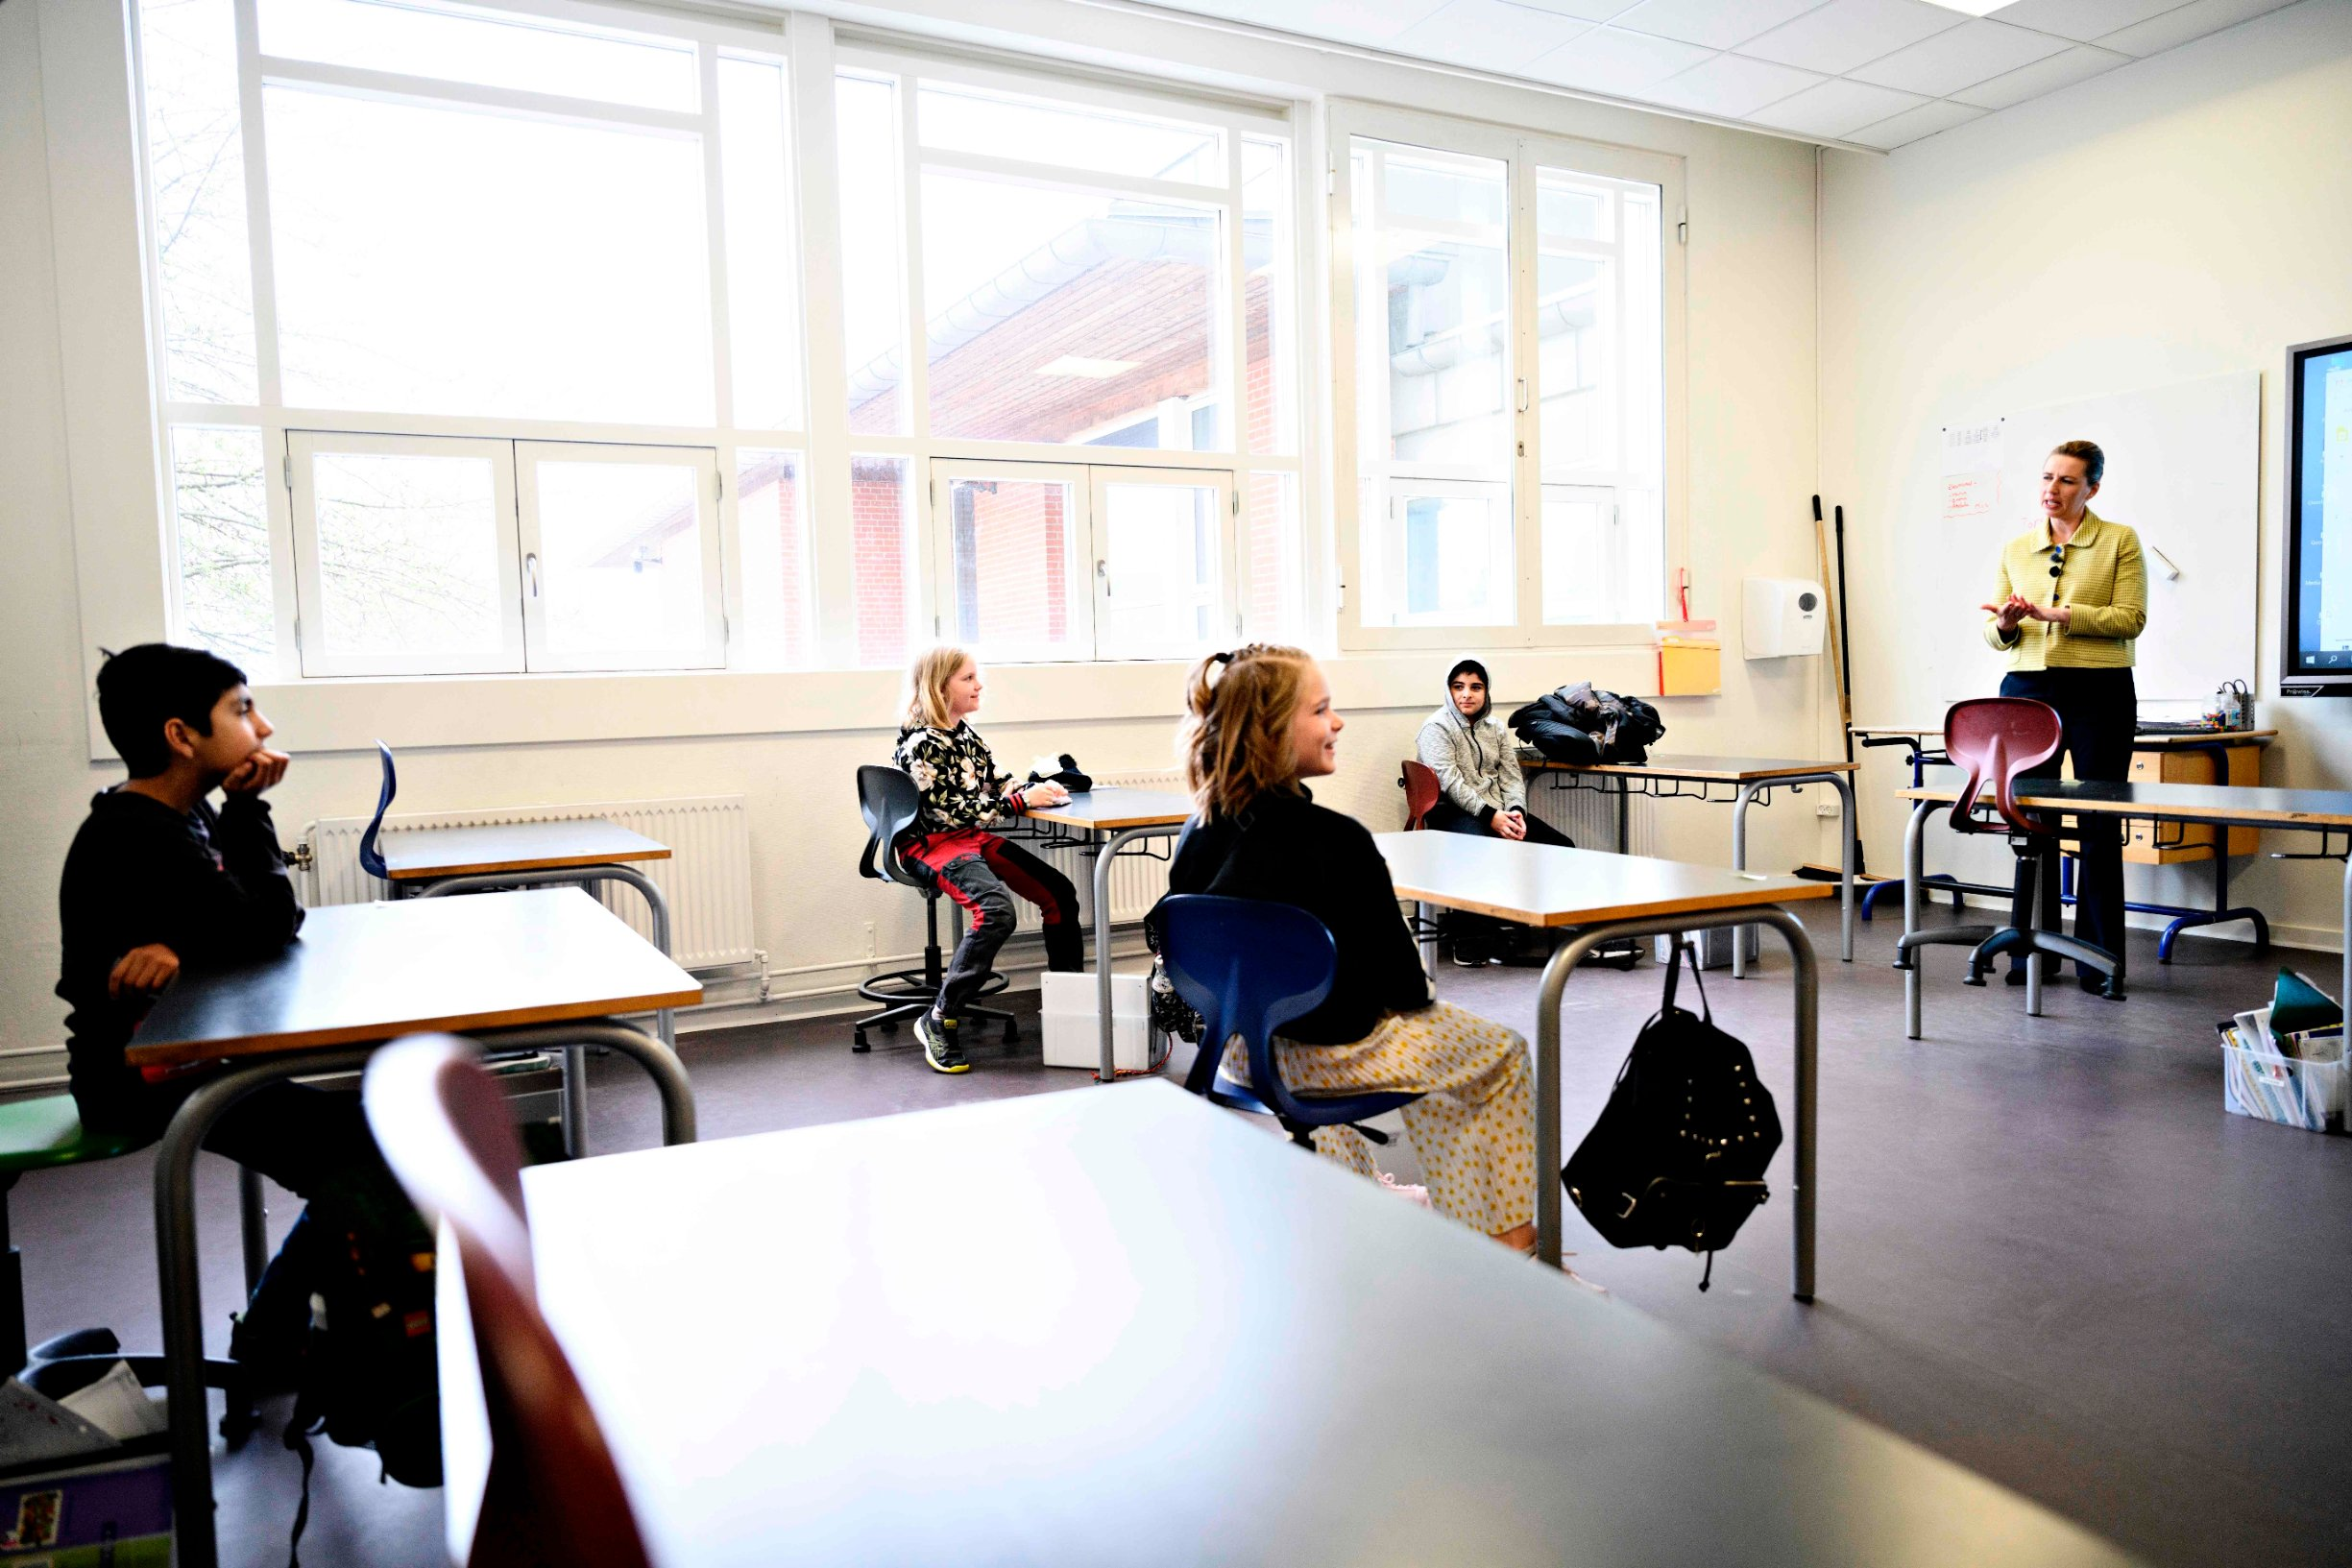 Danish Prime Minister Mette Frederiksen (R) speaks with pupils as she participates in the reopening of Lykkebo School in Valby in Copenhagen on April 15, 2020, after the lockdown to limit the spread of the new coronavirus. - Denmark began reopening schools after a month-long closure over the novel coronavirus, becoming the first country in Europe to do so. Nurseries, kindergartens and primary schools were reopening, according to an AFP correspondent, after they were closed on March 12, 2020 in an effort to curb the COVID-19 epidemic. (Photo by Philip Davali / Ritzau Scanpix / AFP) / Denmark OUT